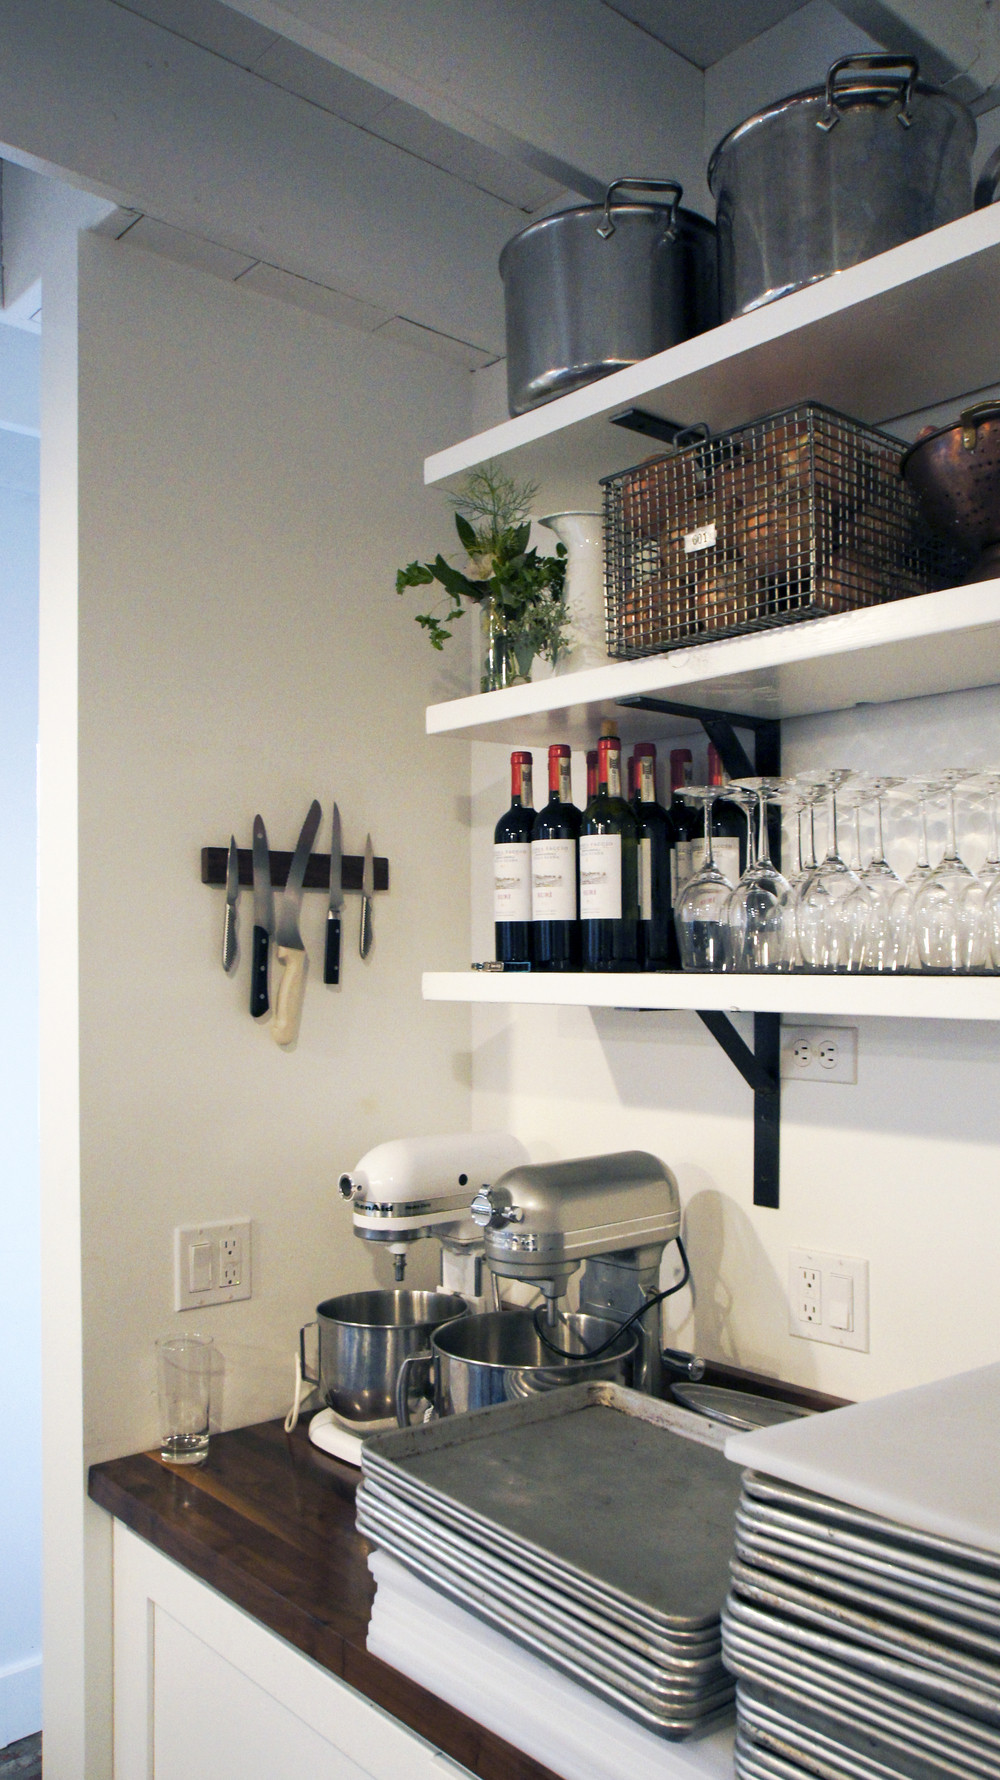 Best ideas about The Pantry Seattle . Save or Pin The Pantry — Atelier Drome Now.